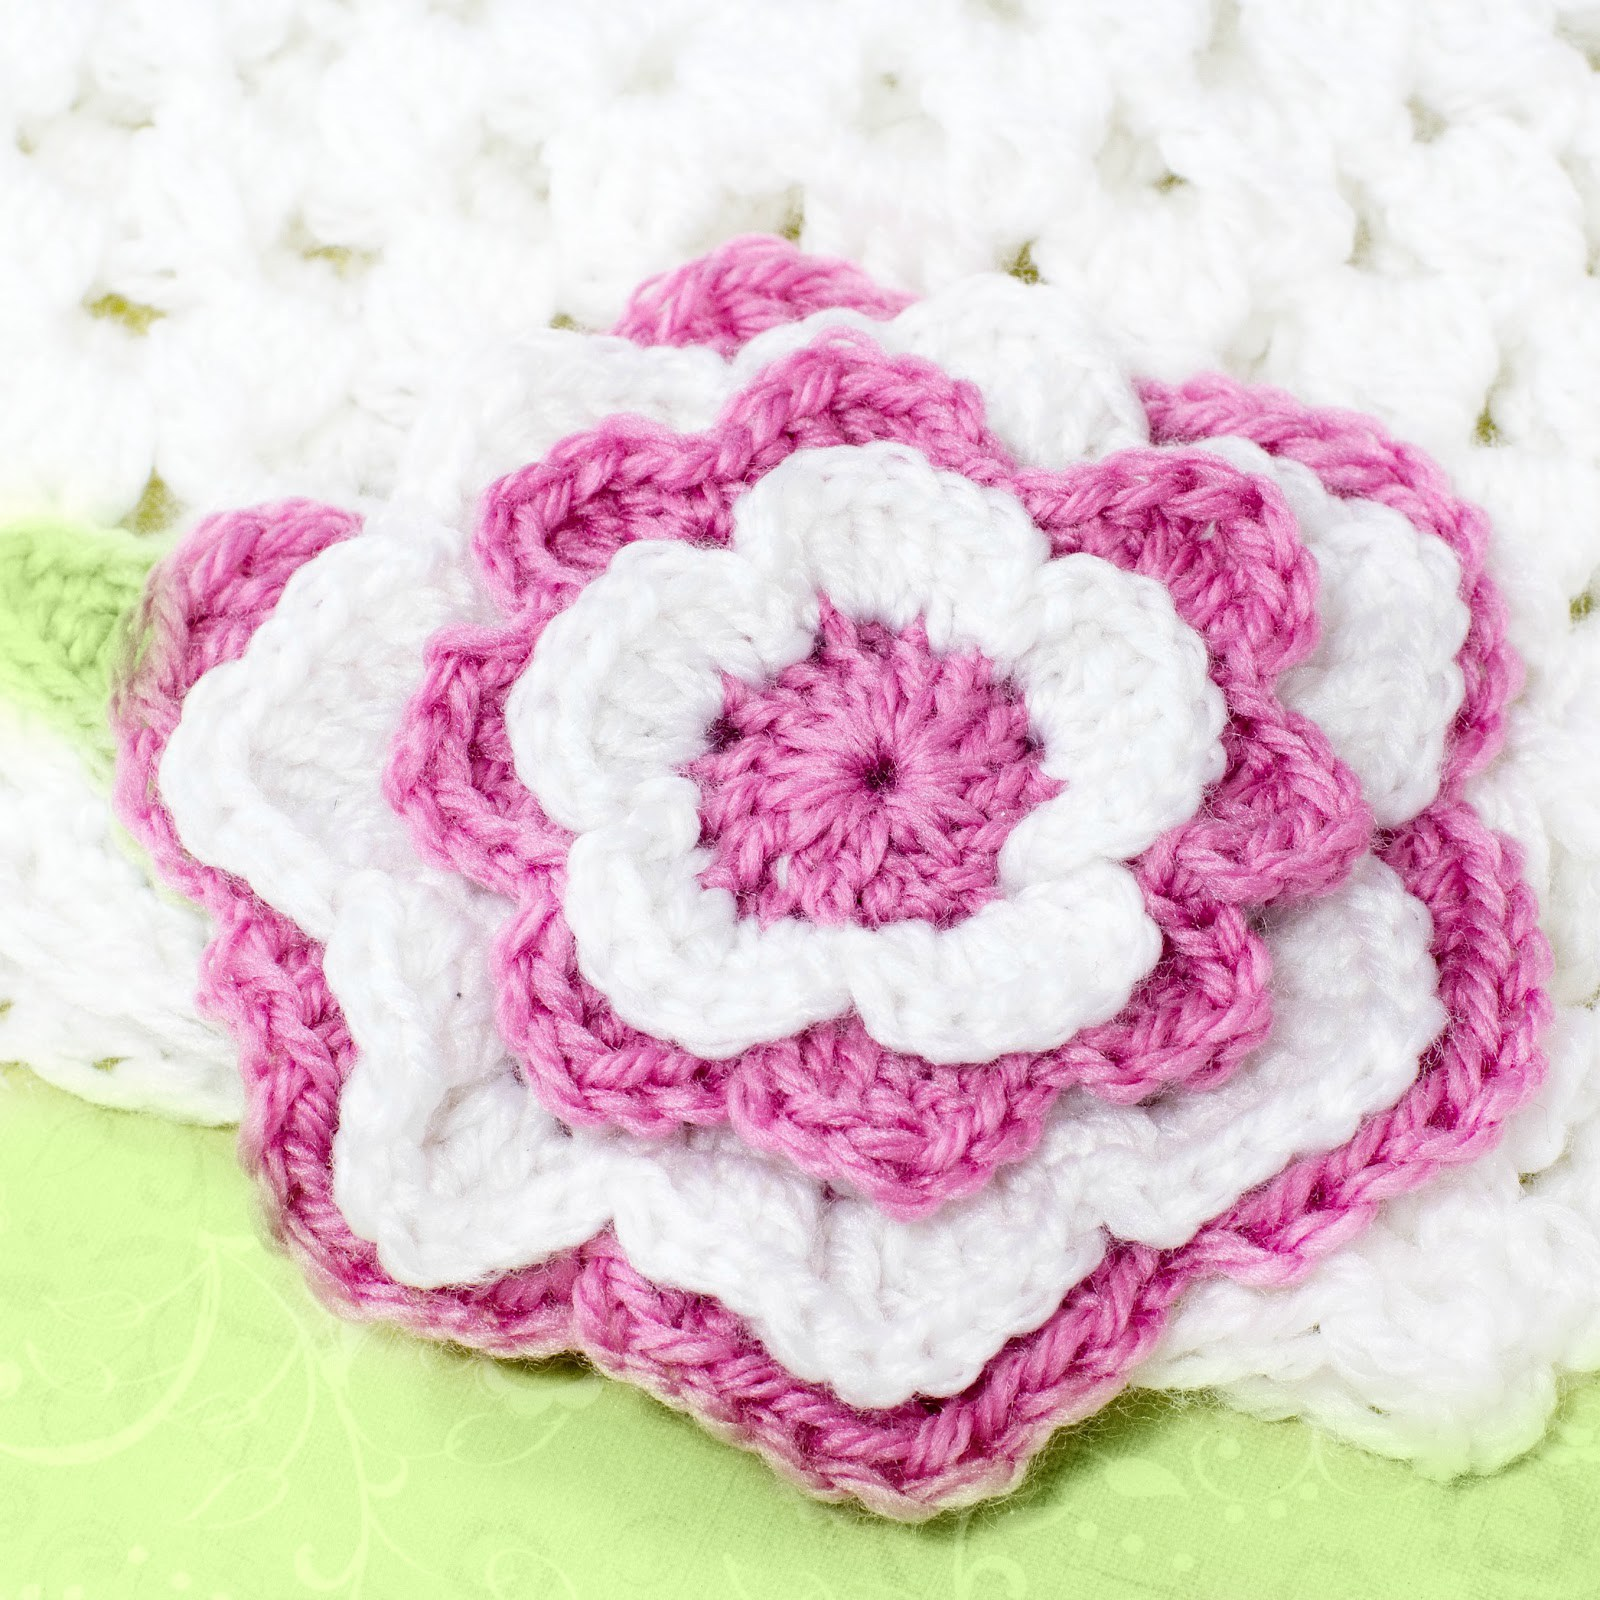 Learning to make beautiful flower crochet pattern for beginners